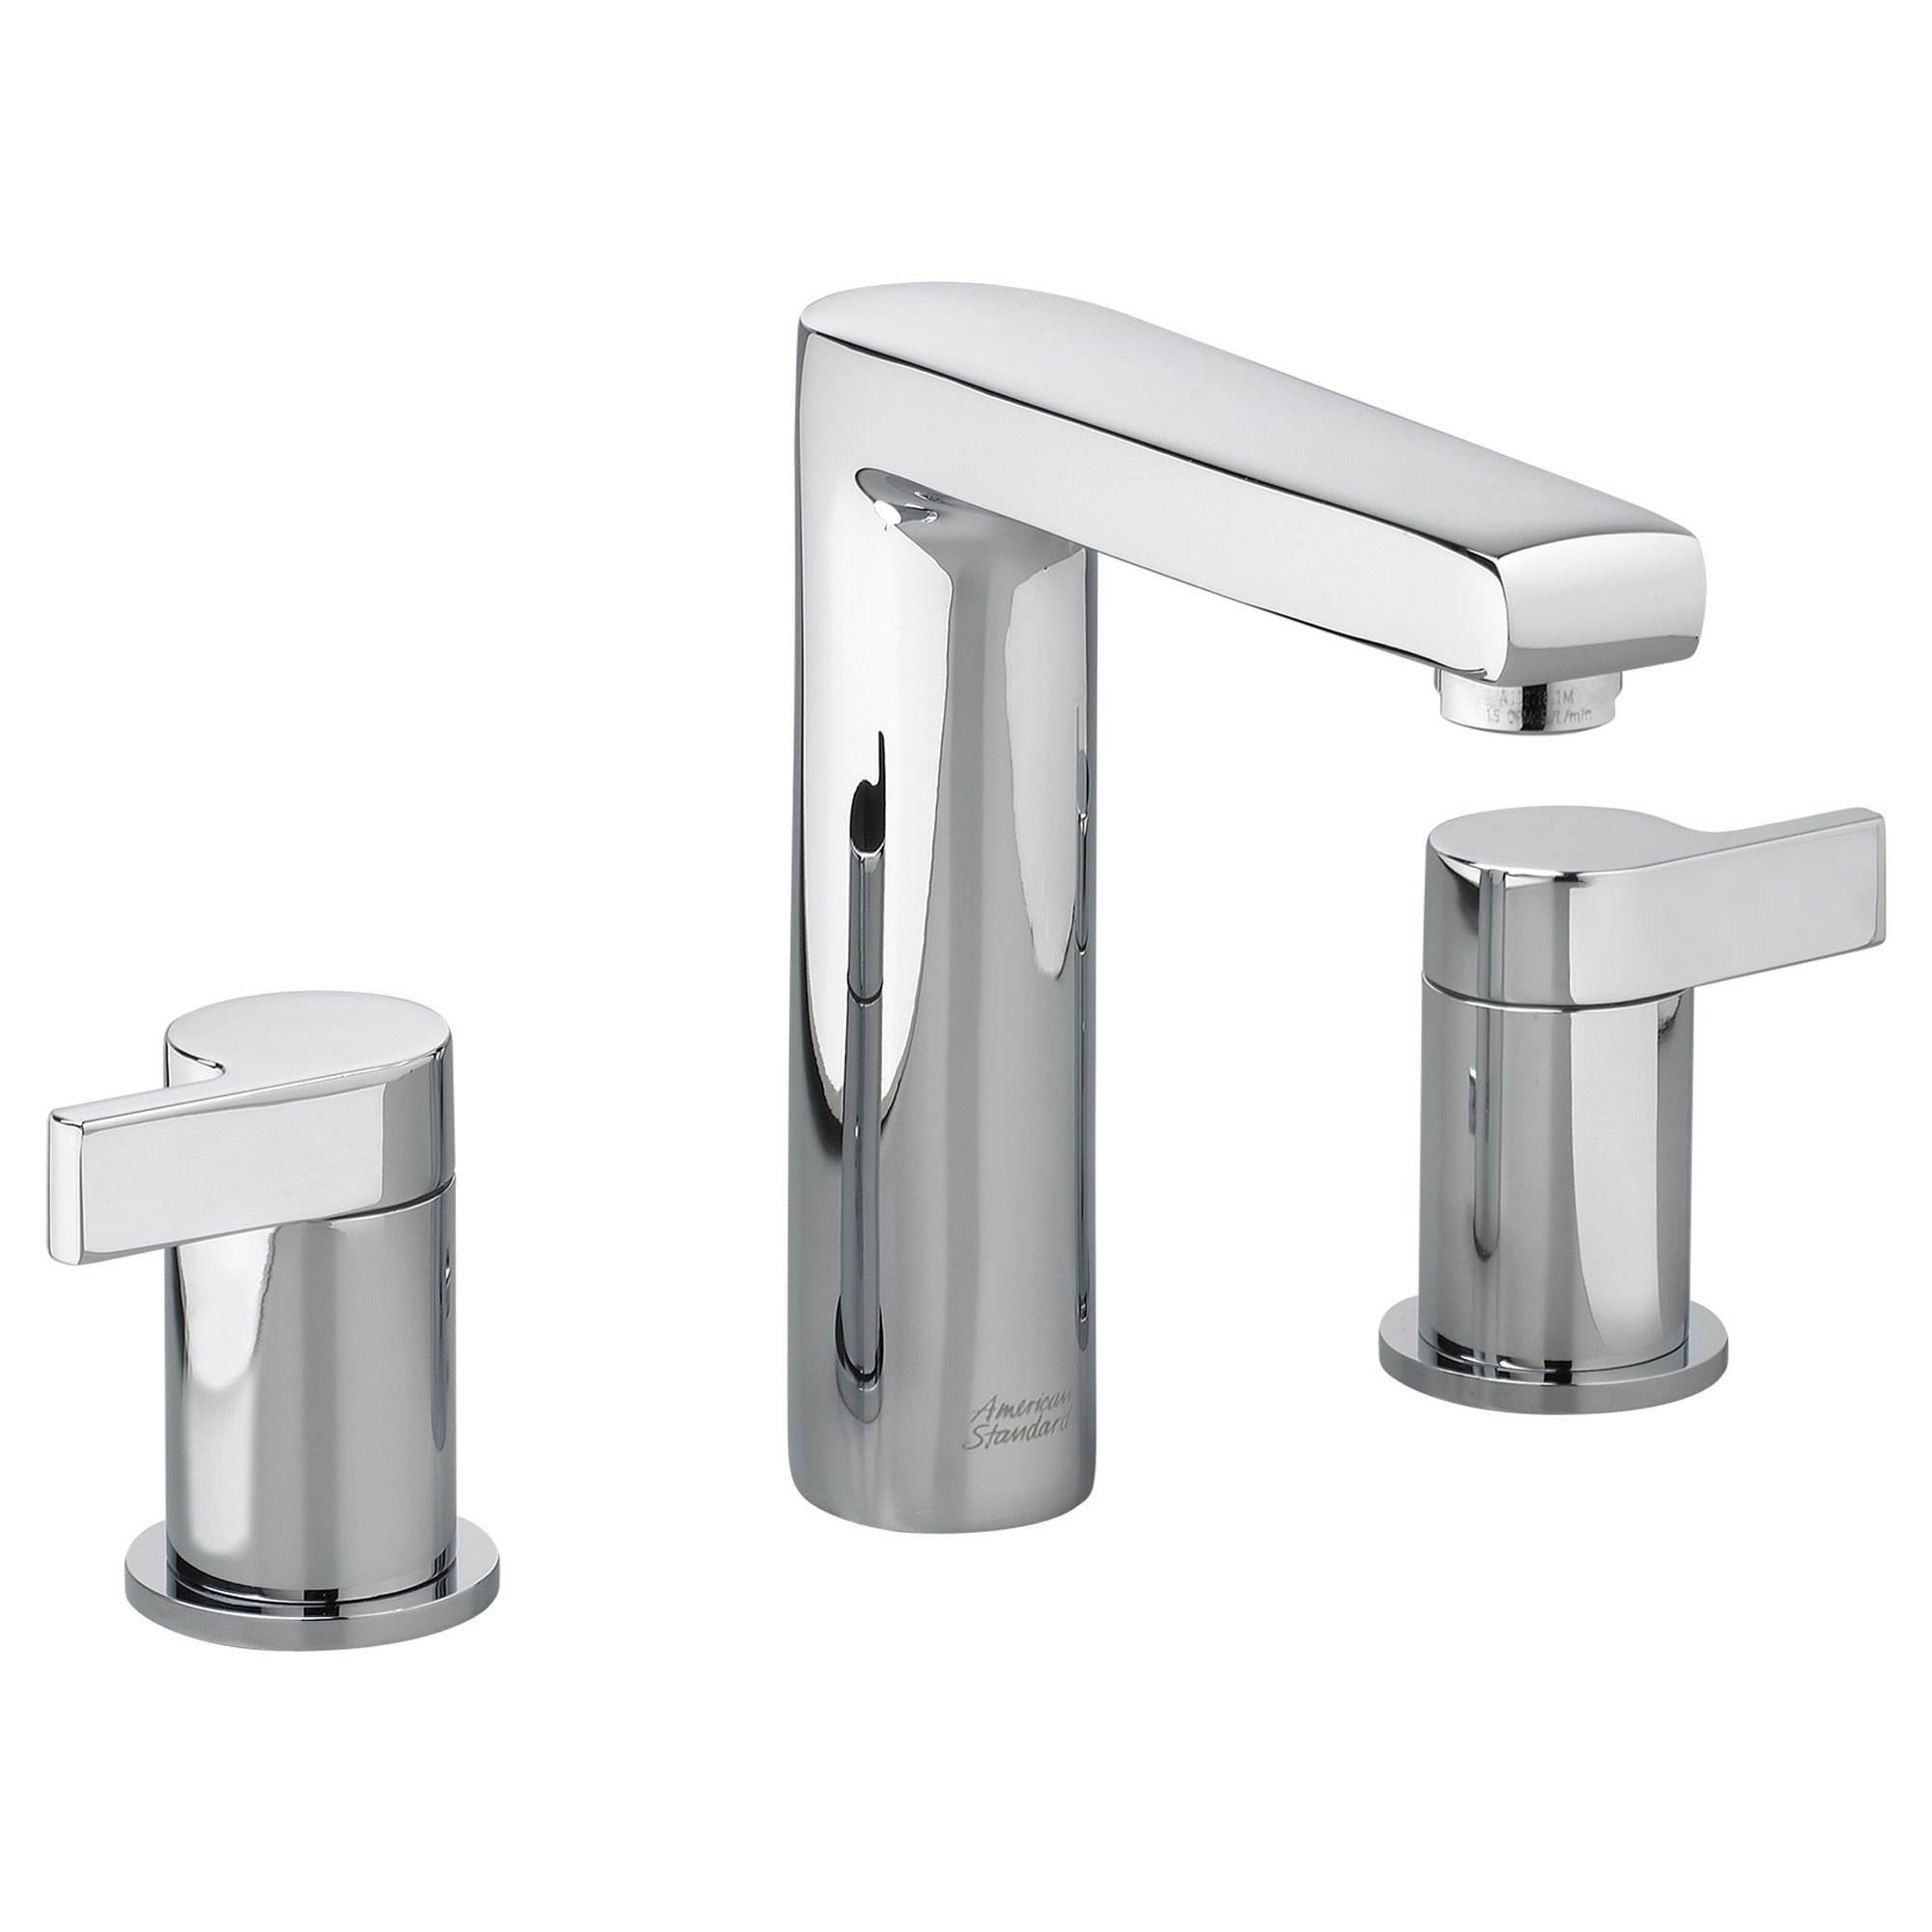 Faucet clipart bathtub faucet. Studio widespread high arc